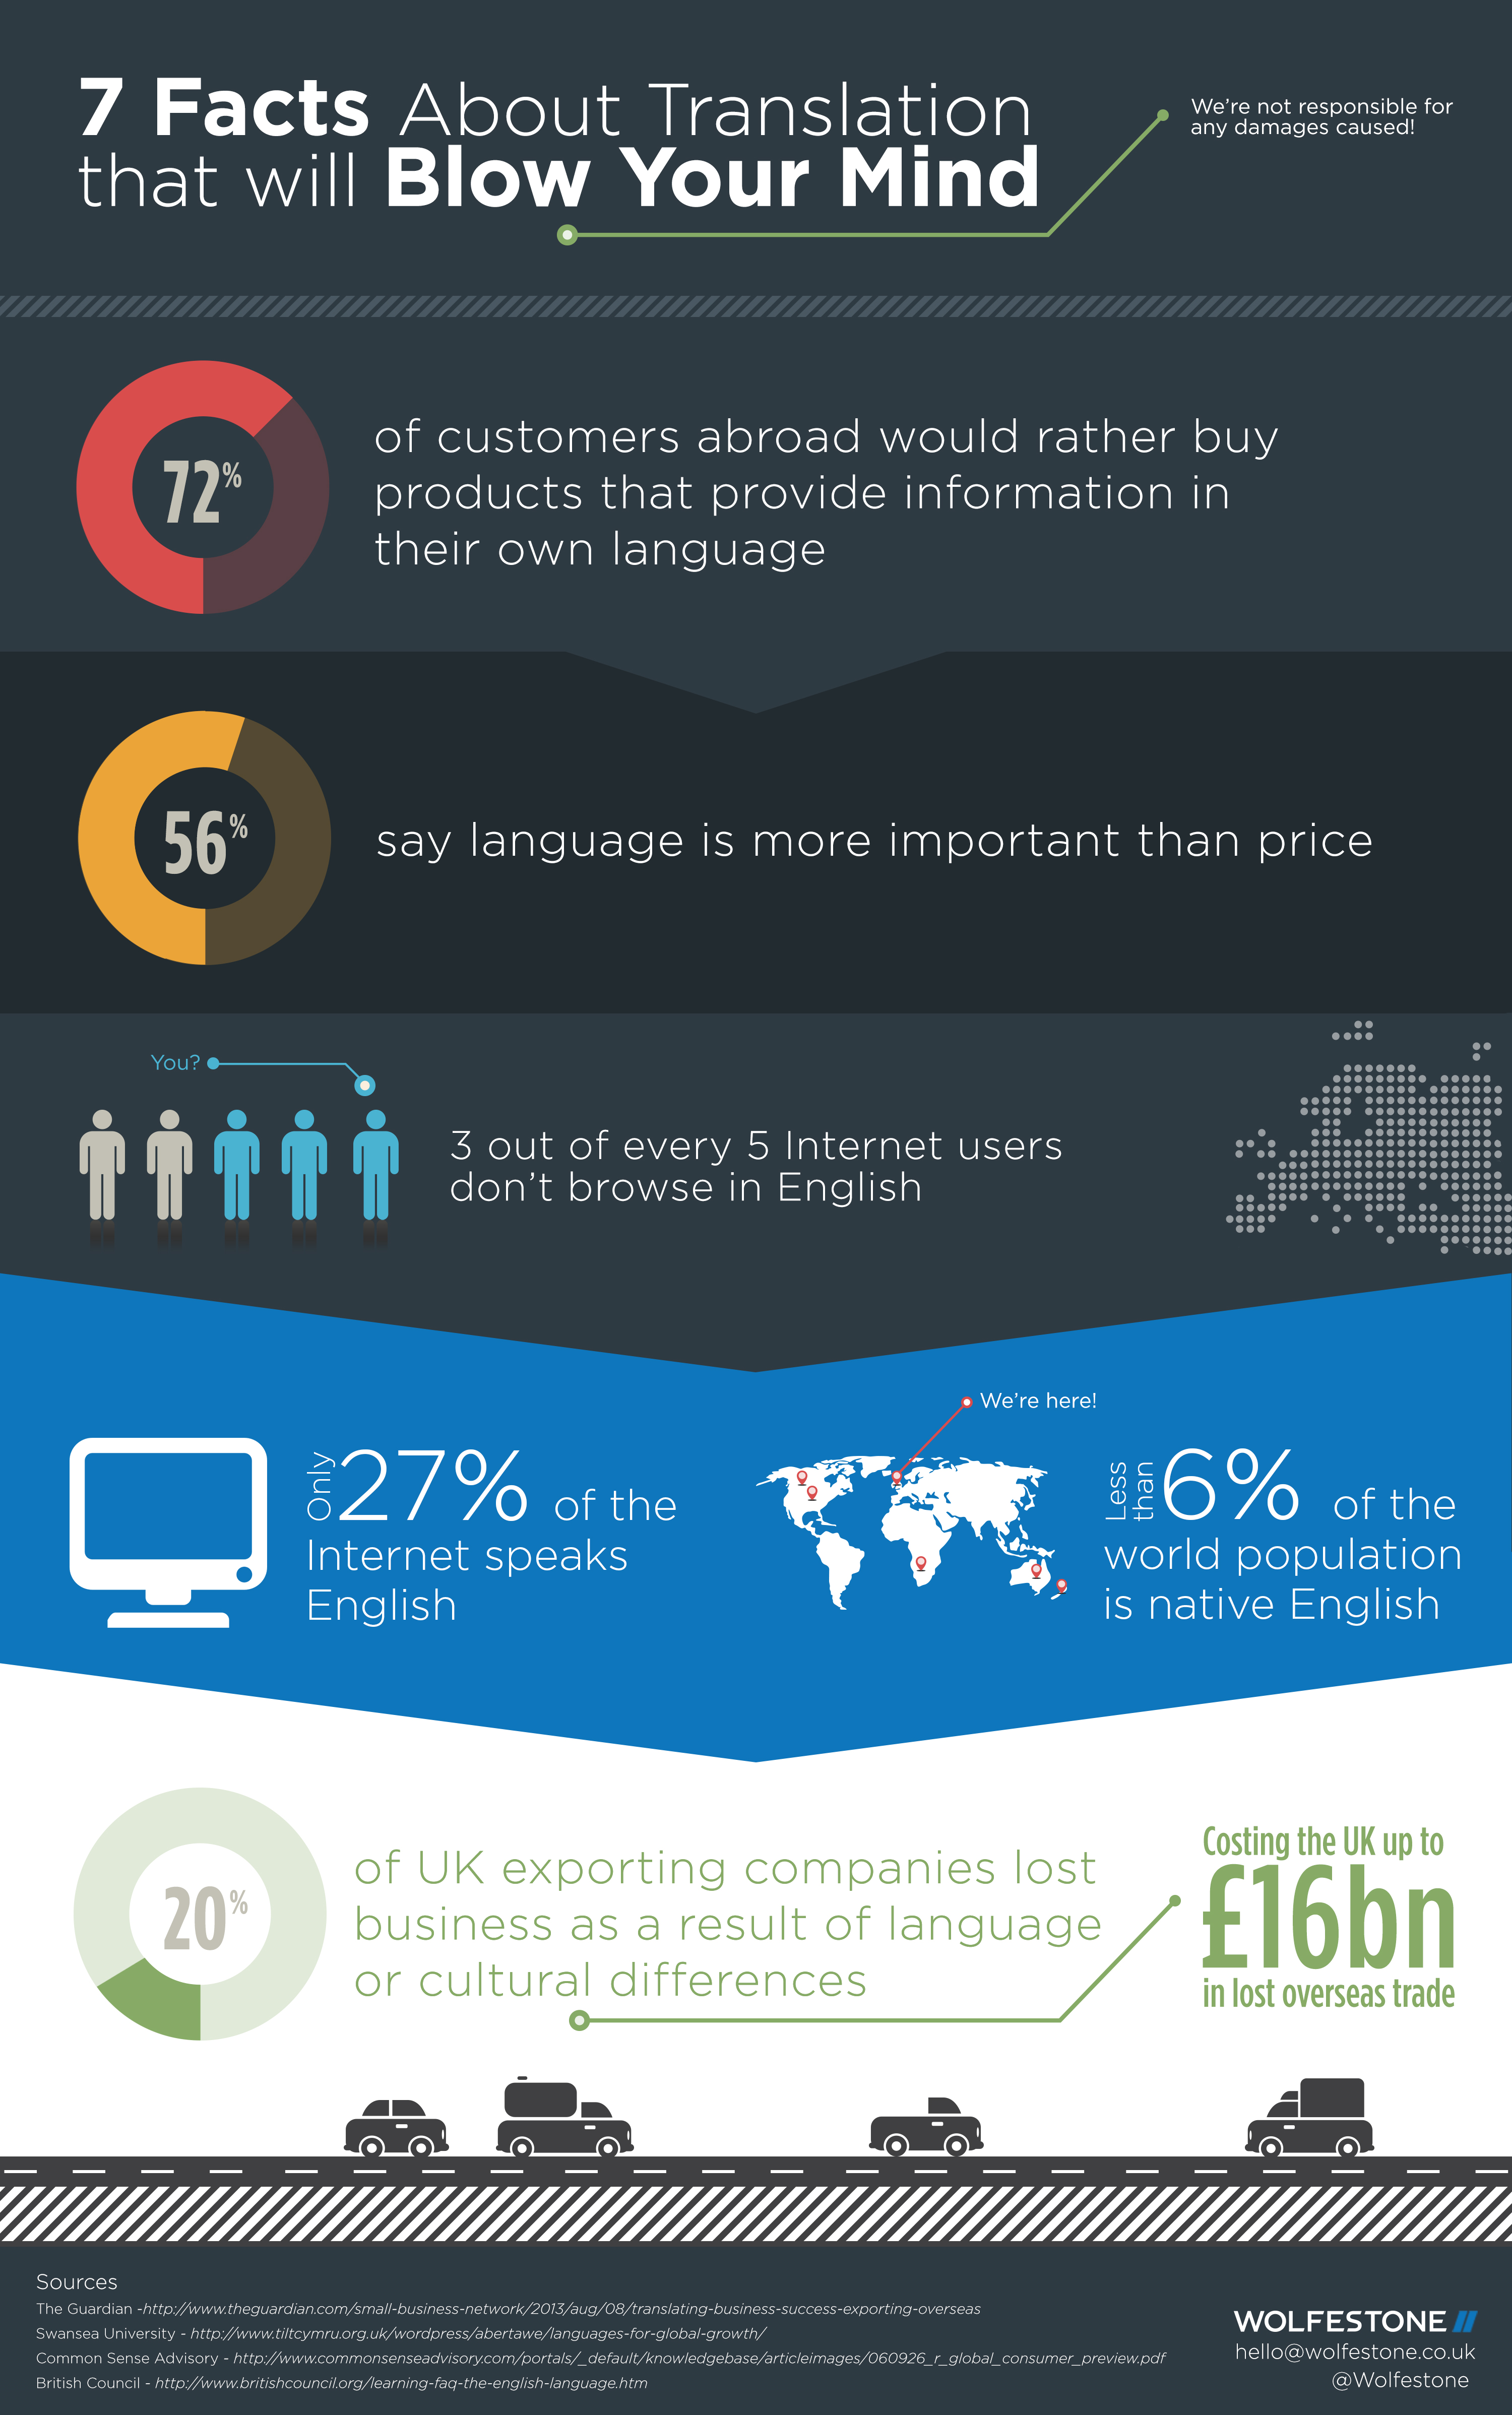 7-facts-about-translation-infographic